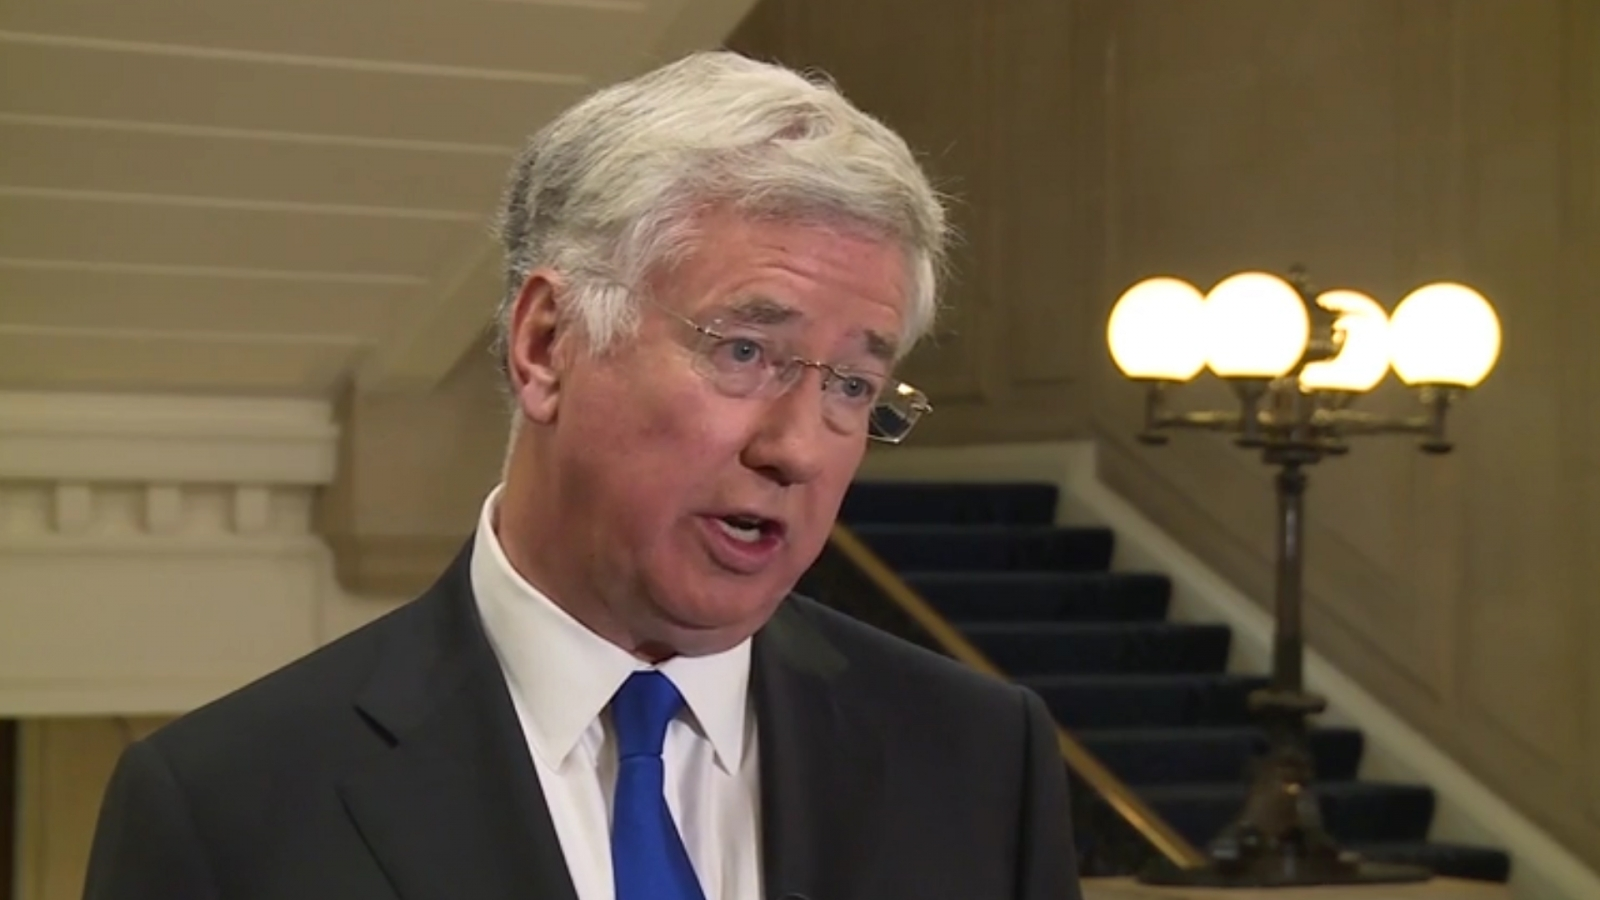 michael-fallon-u-k-will-support-u-s-retaliation-against-assad-over-possible-syria-chemical-attacks